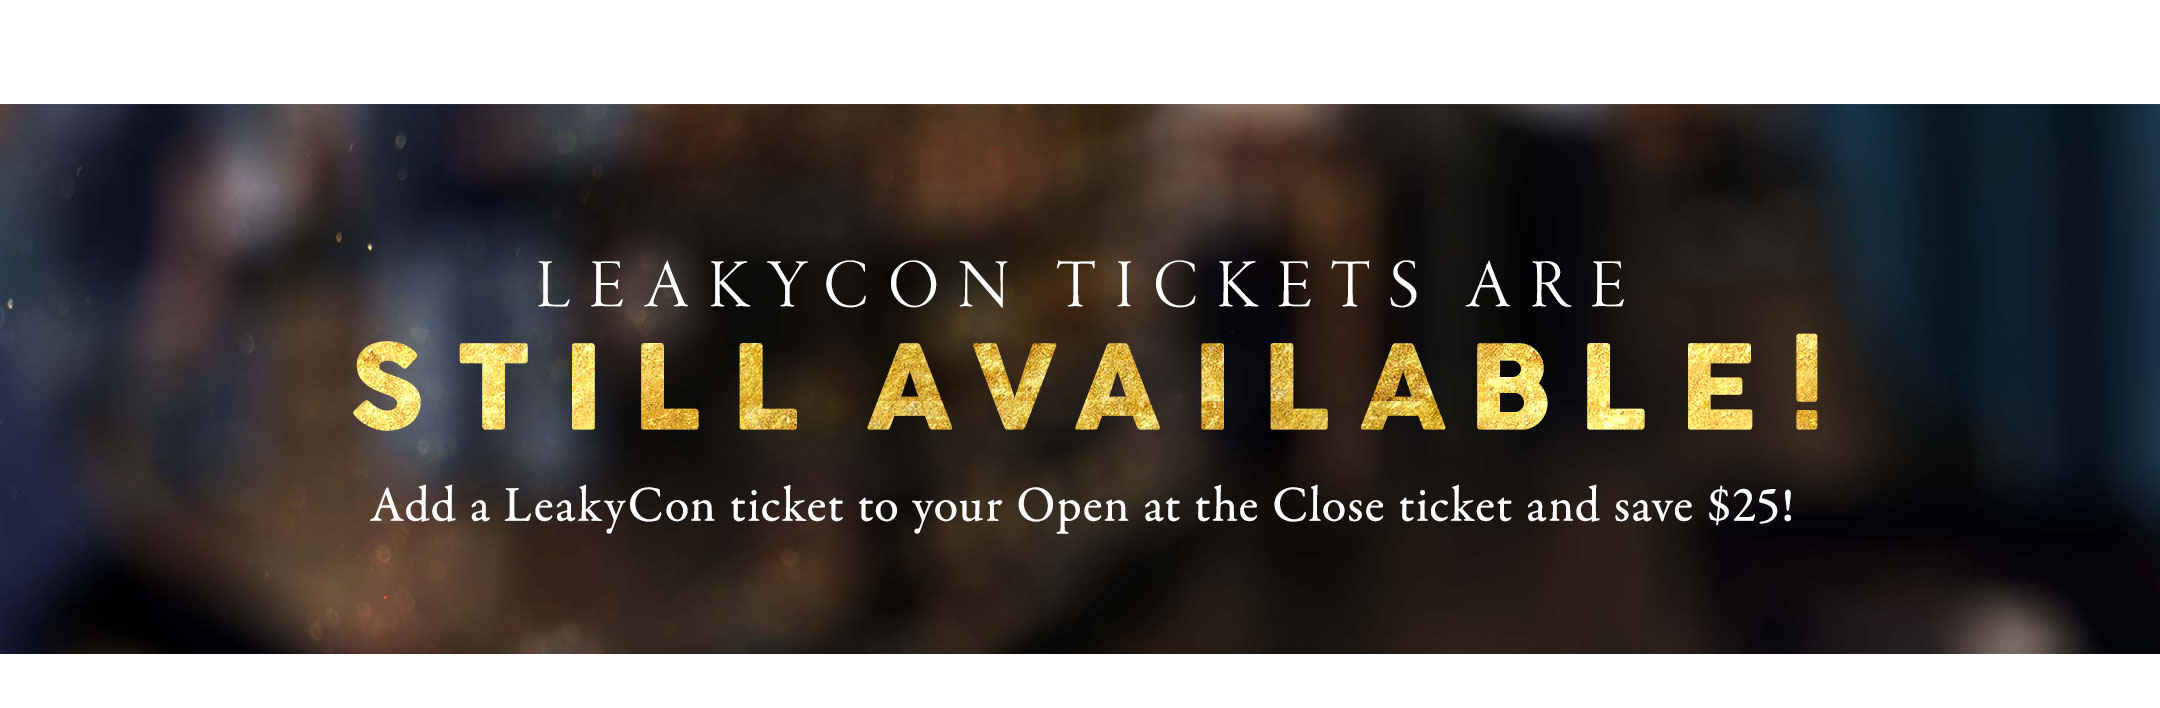 Add a LeakyCon ticket to your Open at the Close ticket to save $25!